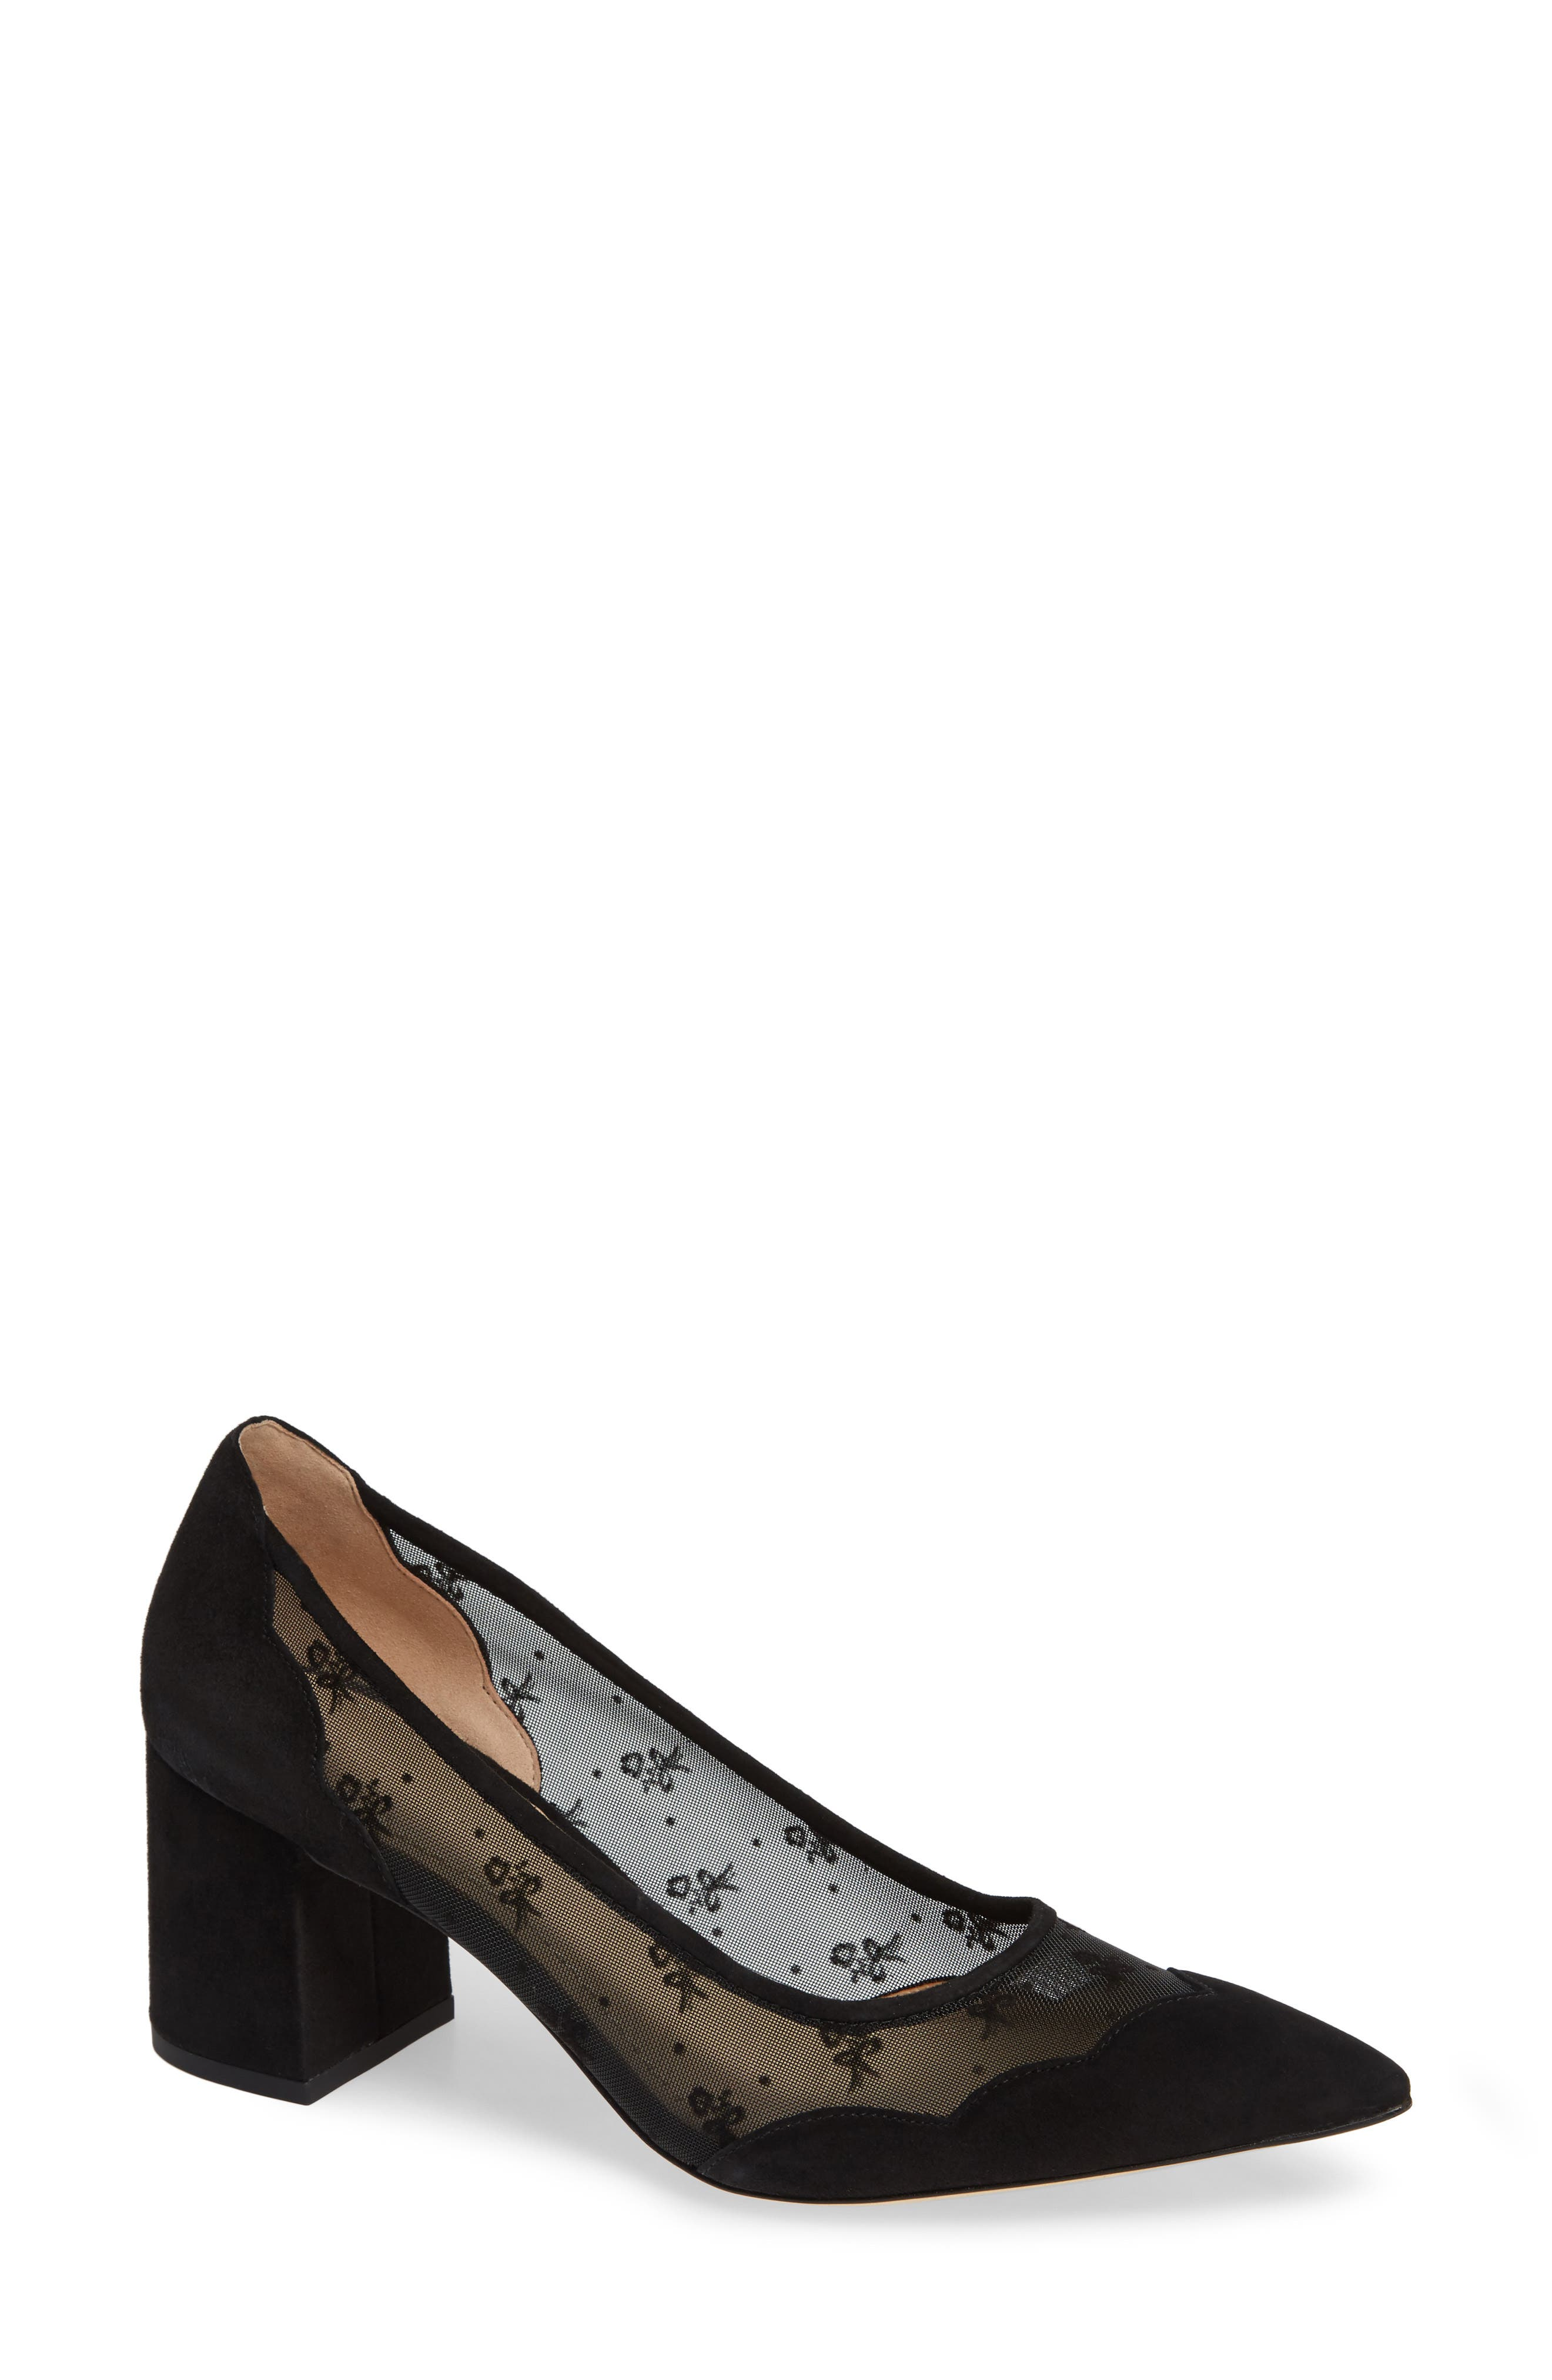 COACH Whitley Scallop Pointy Toe Pump, Main, color, BLACK SUEDE